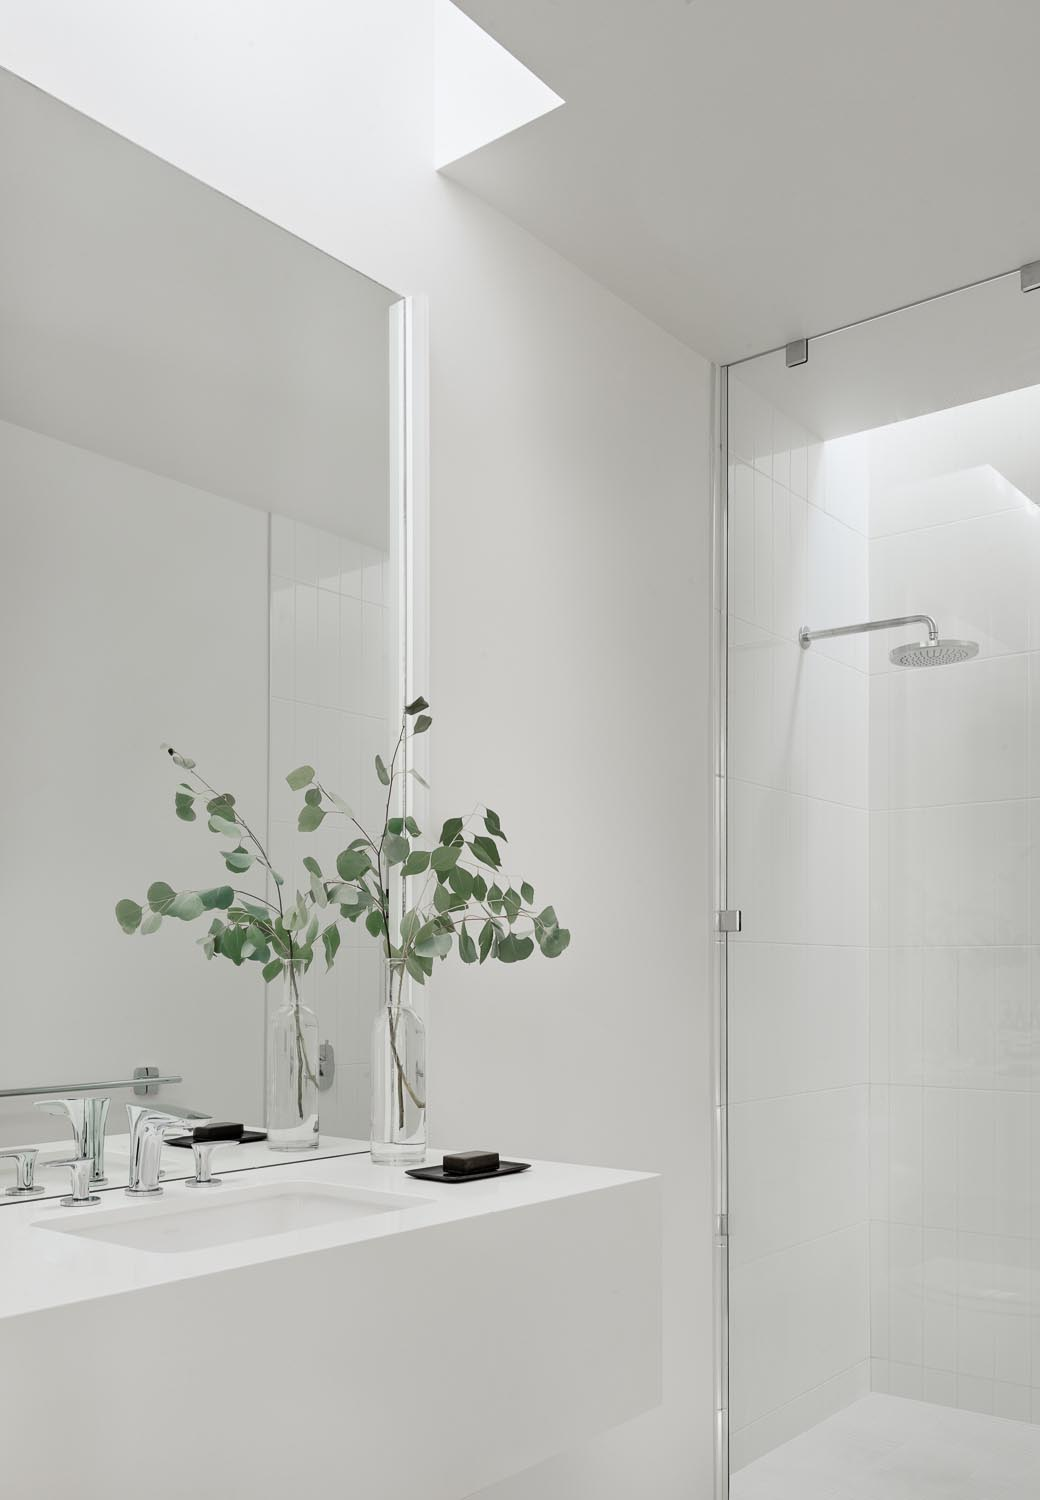 A modern white bathroom with a skylight that highlights the vanity, and a floor-to-ceiling glass screen separates the shower.